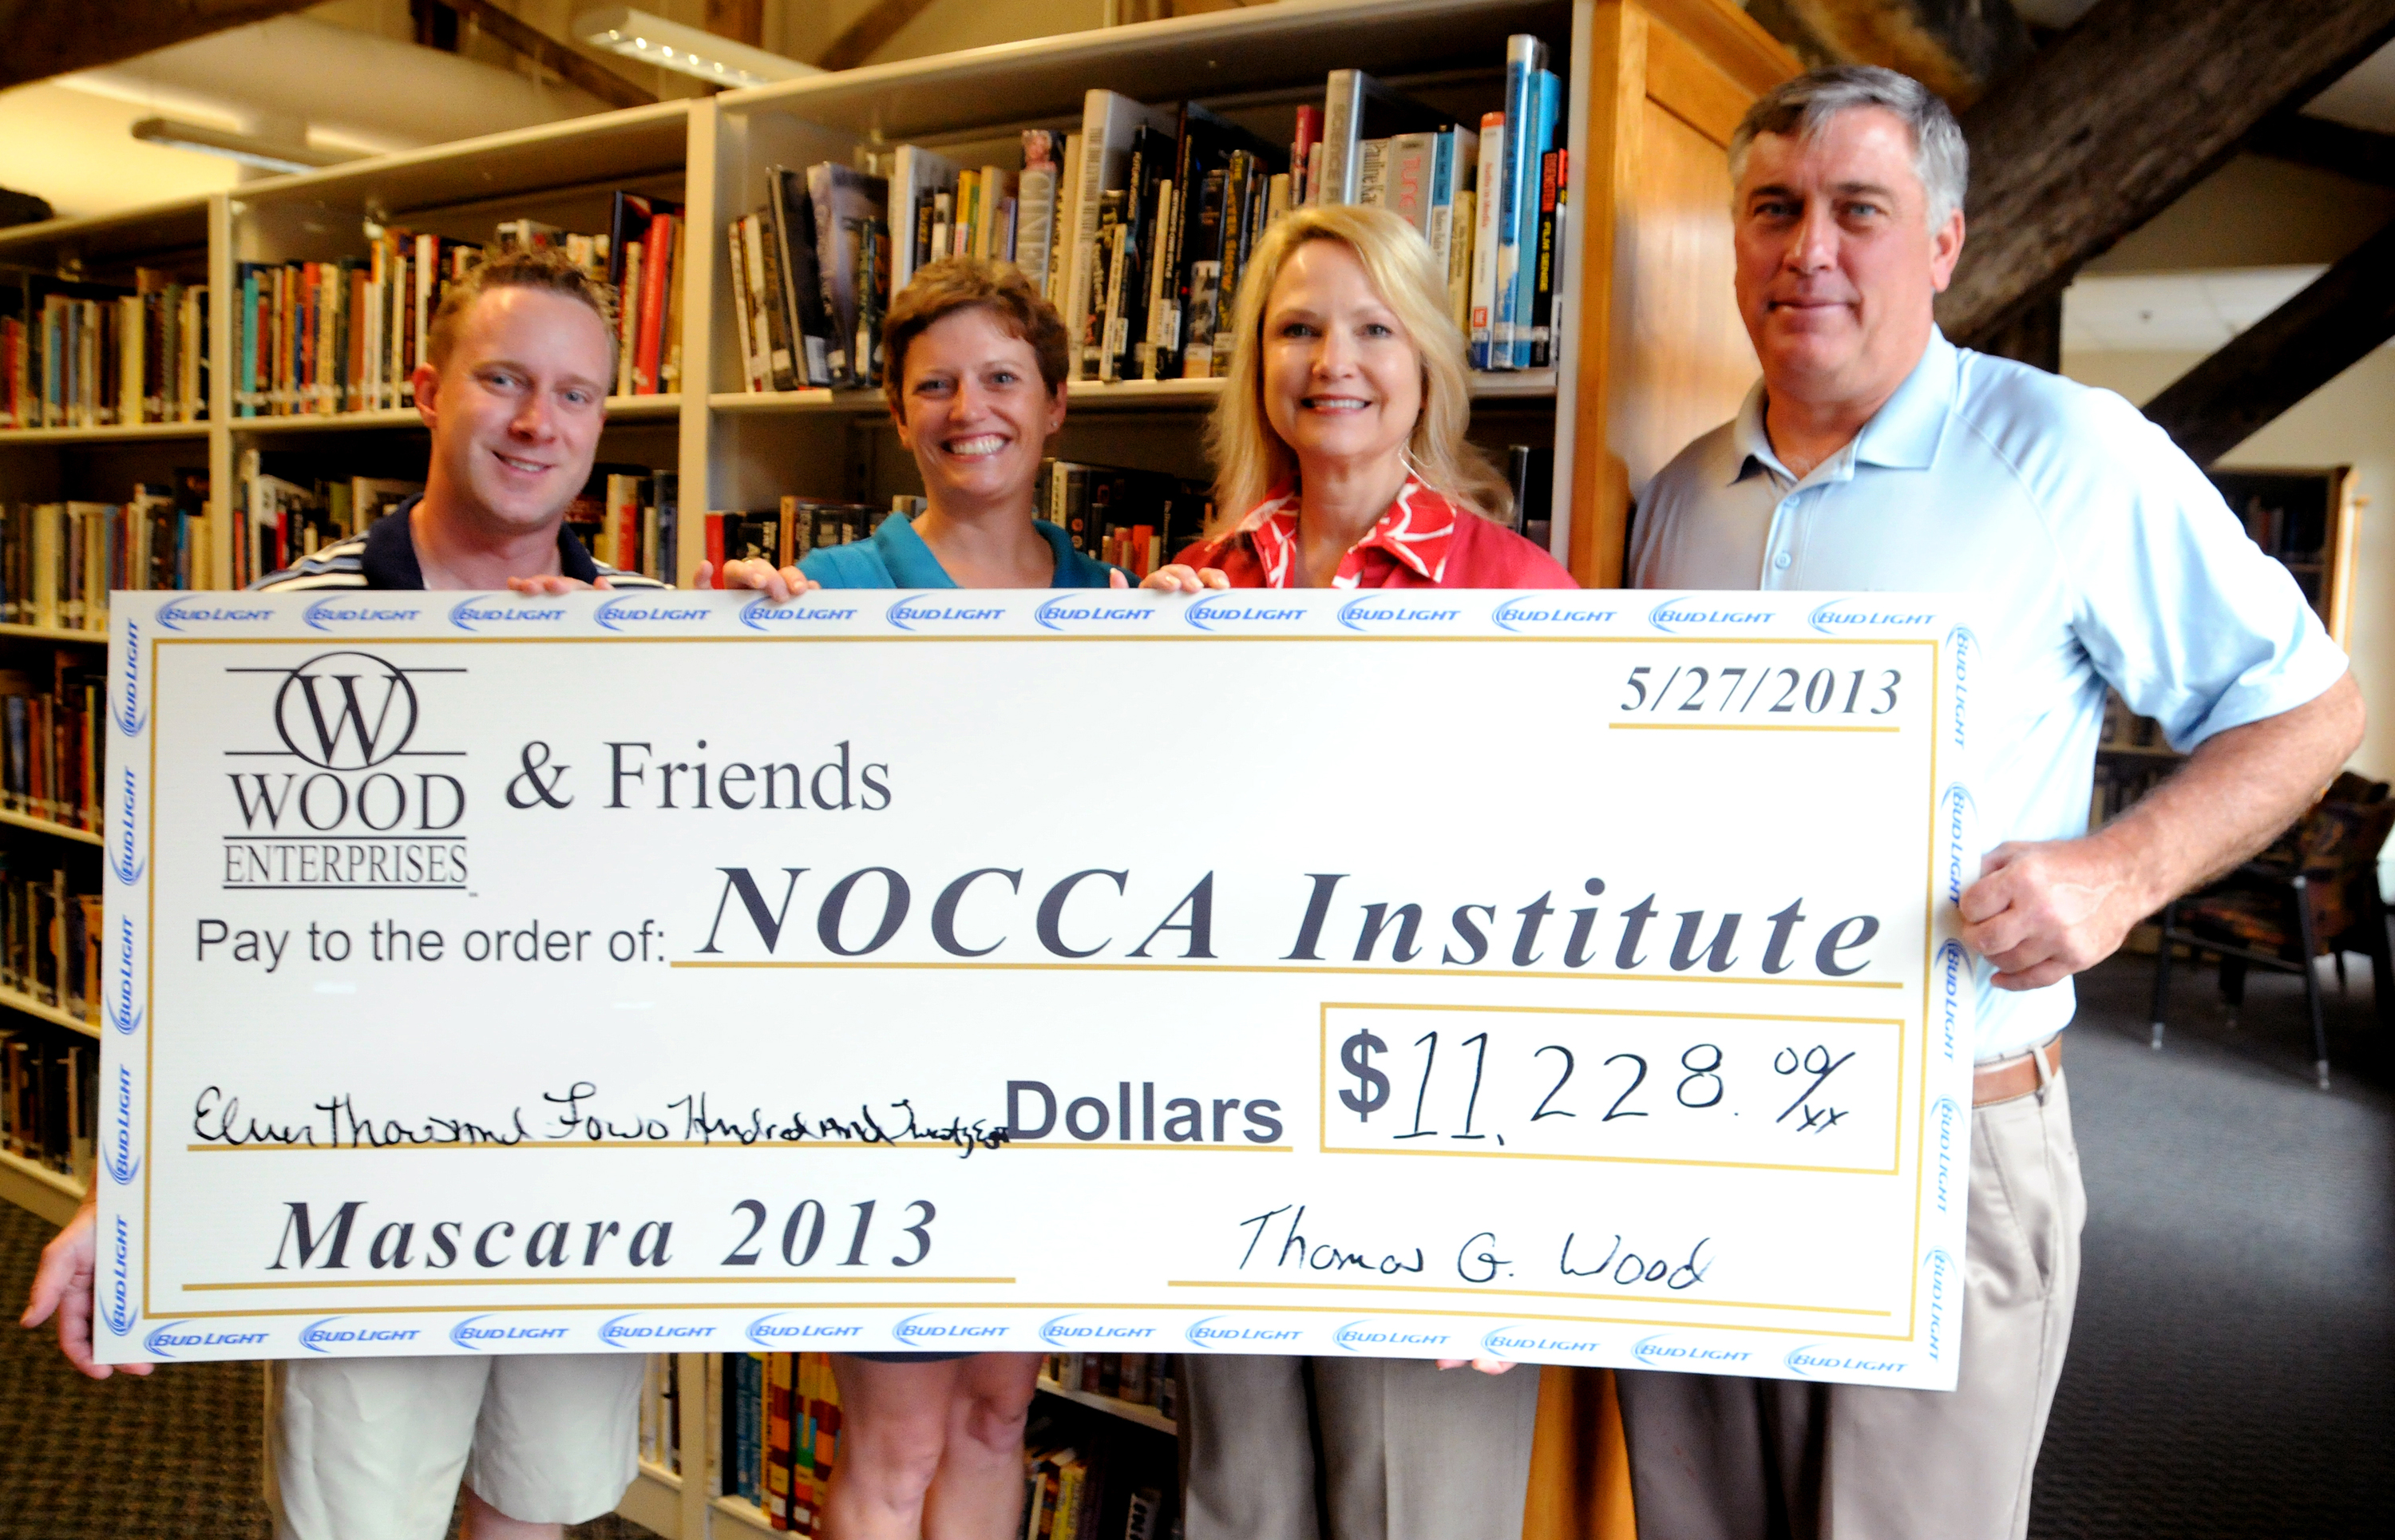 Wood Enterprises Has Raised Over $100,000 To Support The NOCCA Institute